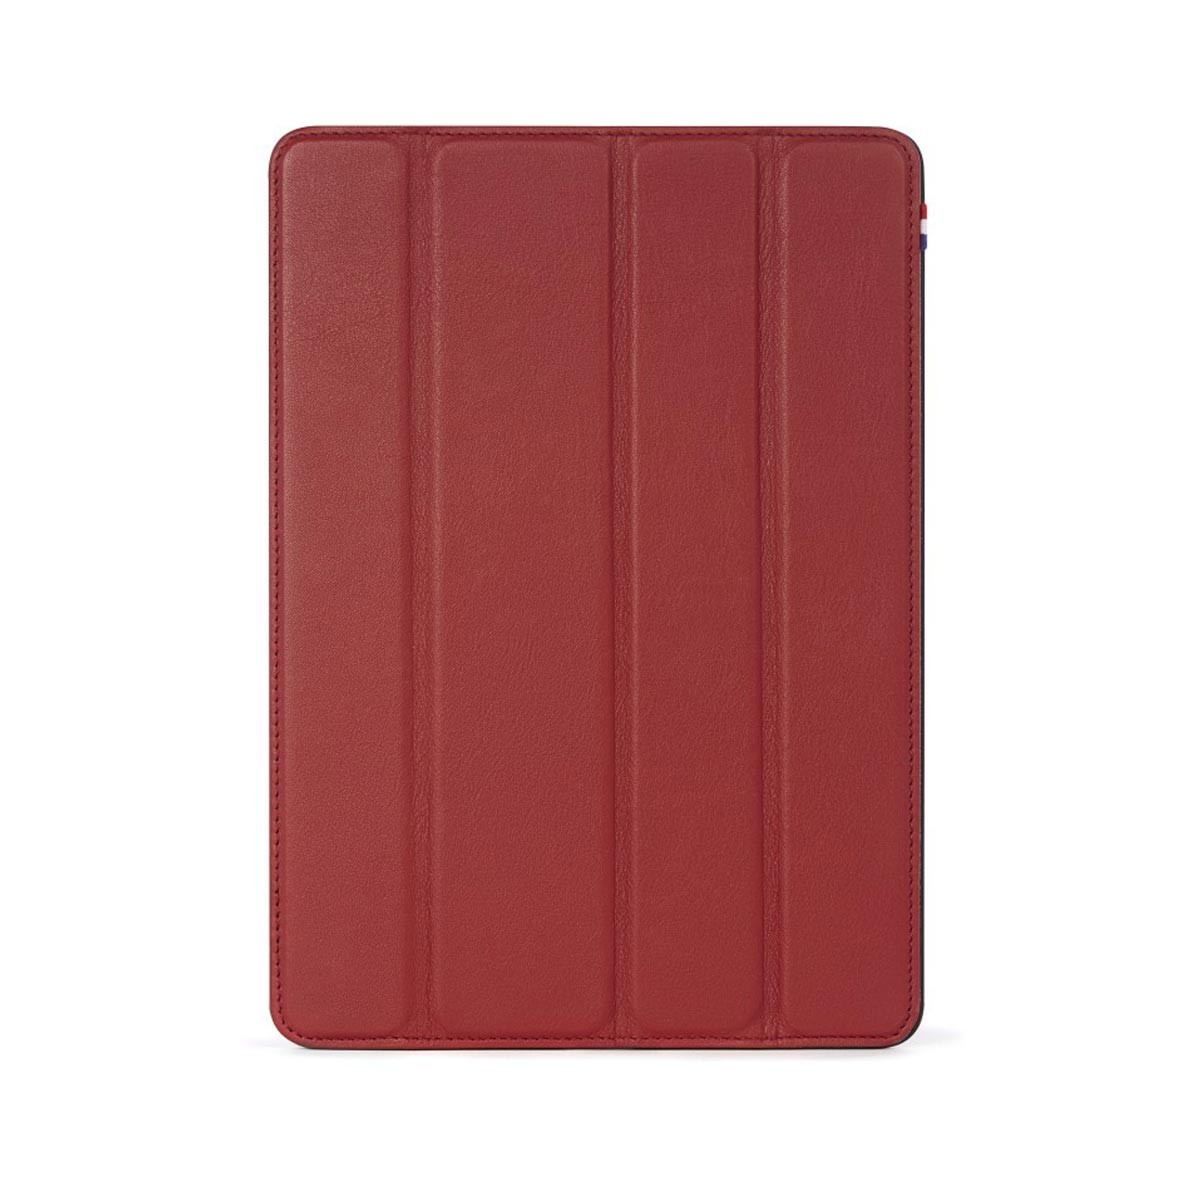 "Decoded Leather Slim Cover for iPad Pro 9,7"" red"